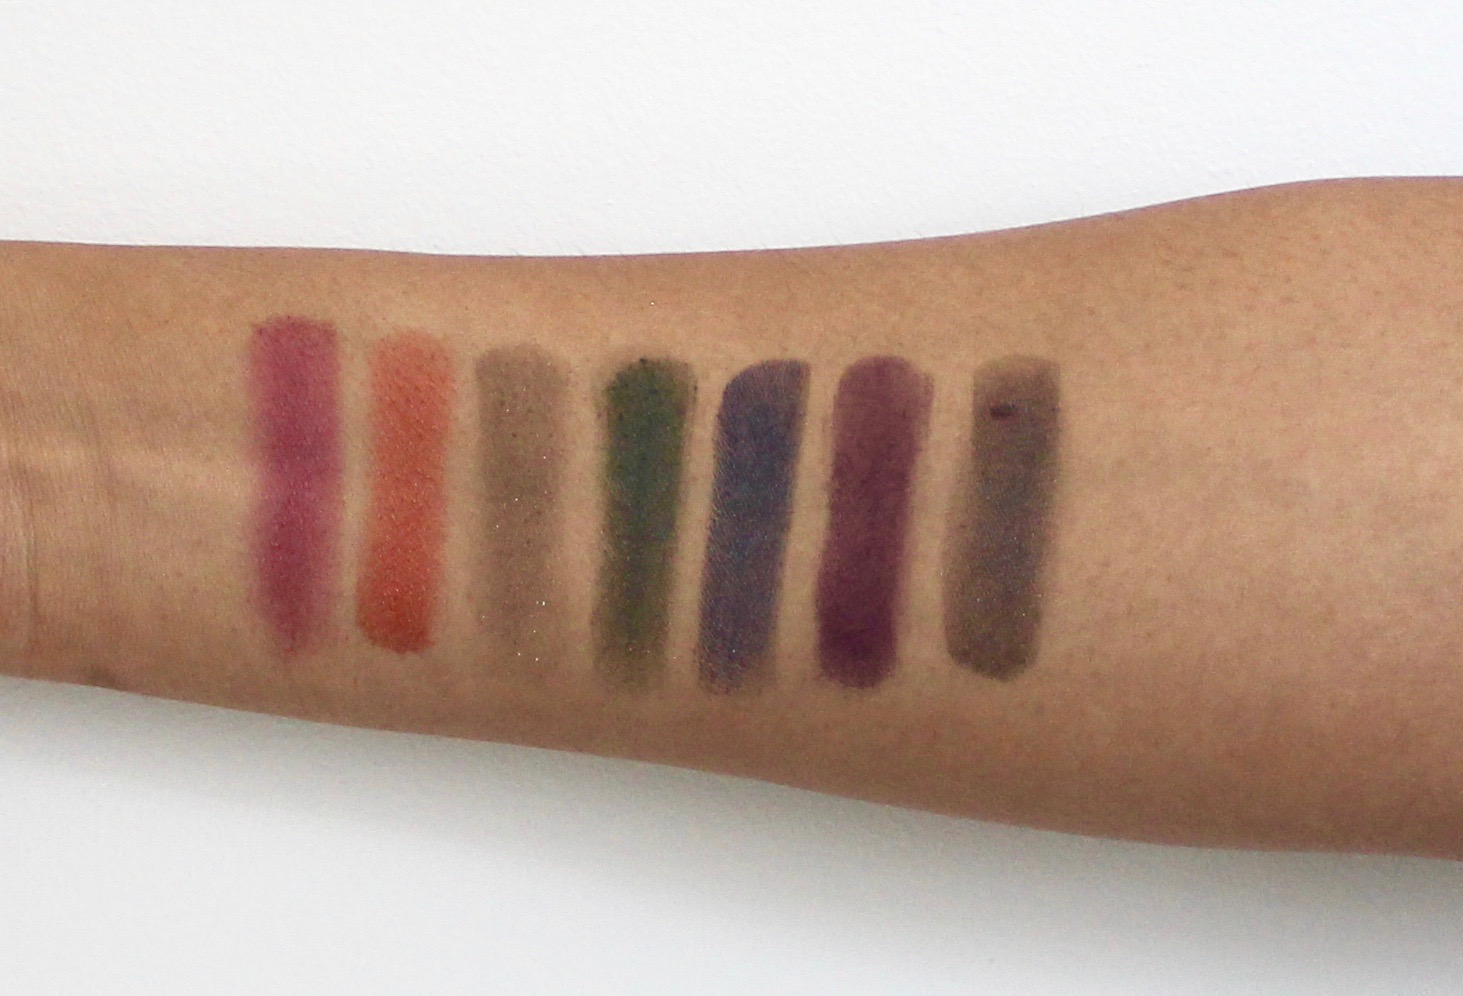 Top row full spectrum palette swatches